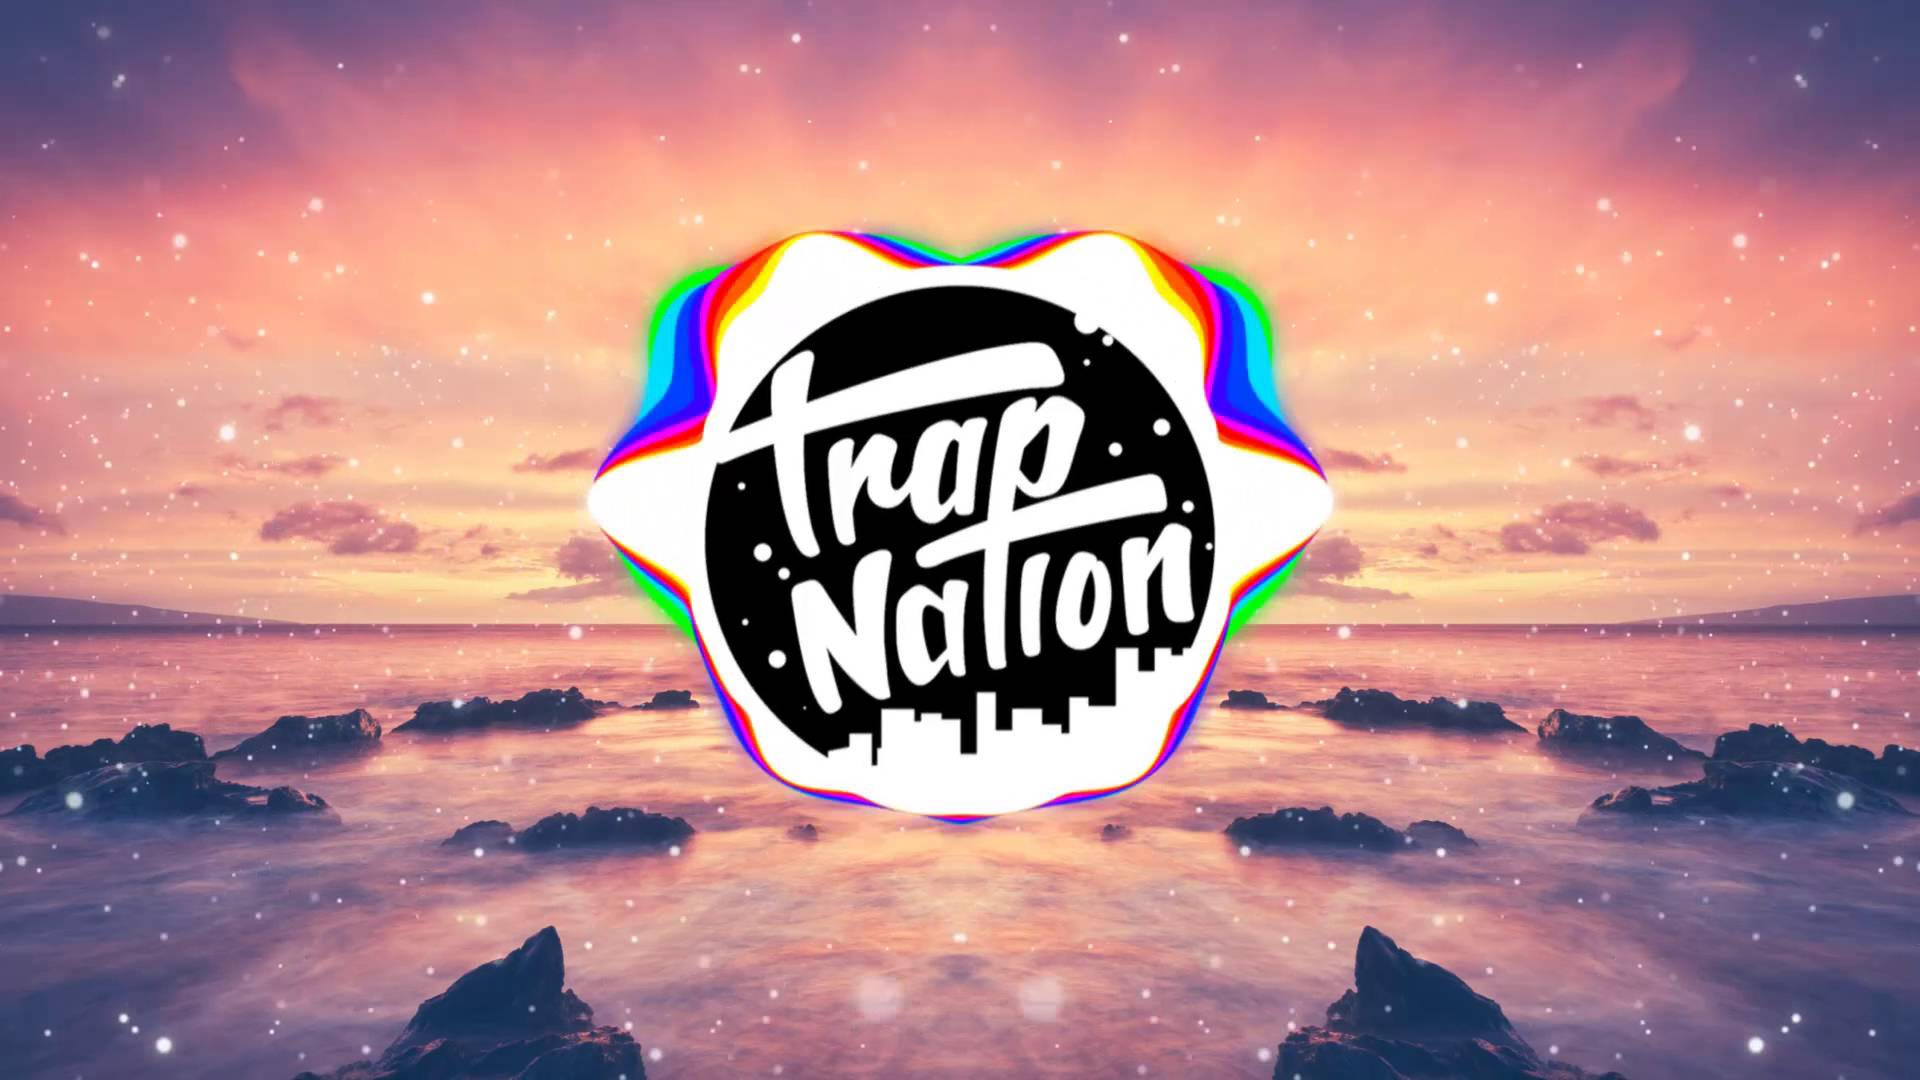 Trap Nation Ceo Responds To Allegations Of Hacking